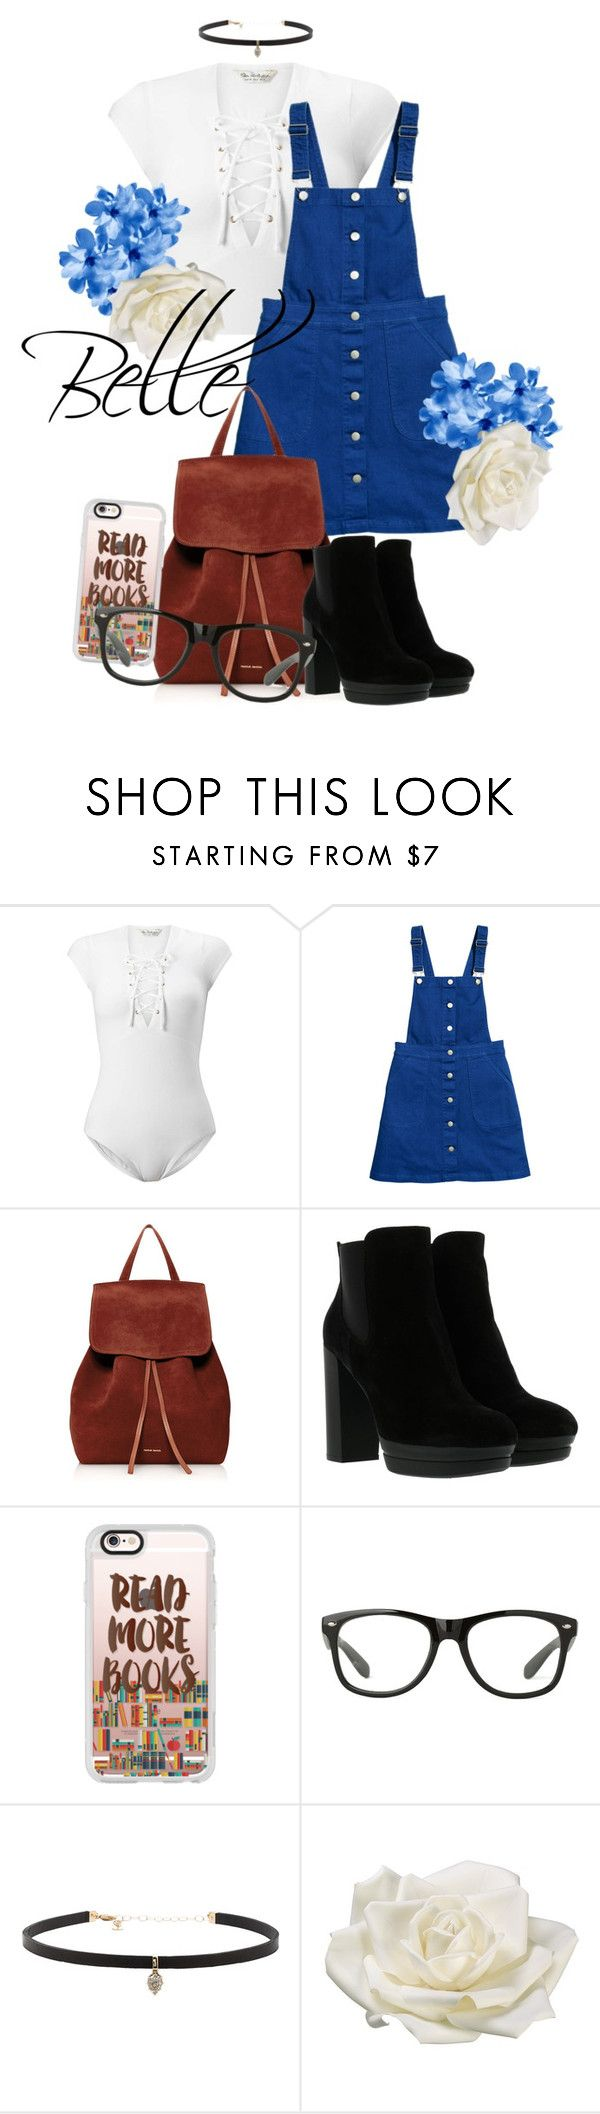 """Belle"" by grraciie-386 on Polyvore featuring Miss Selfridge, Mansur Gavriel, Hogan, Casetify, Carbon & Hyde and Allstate Floral"